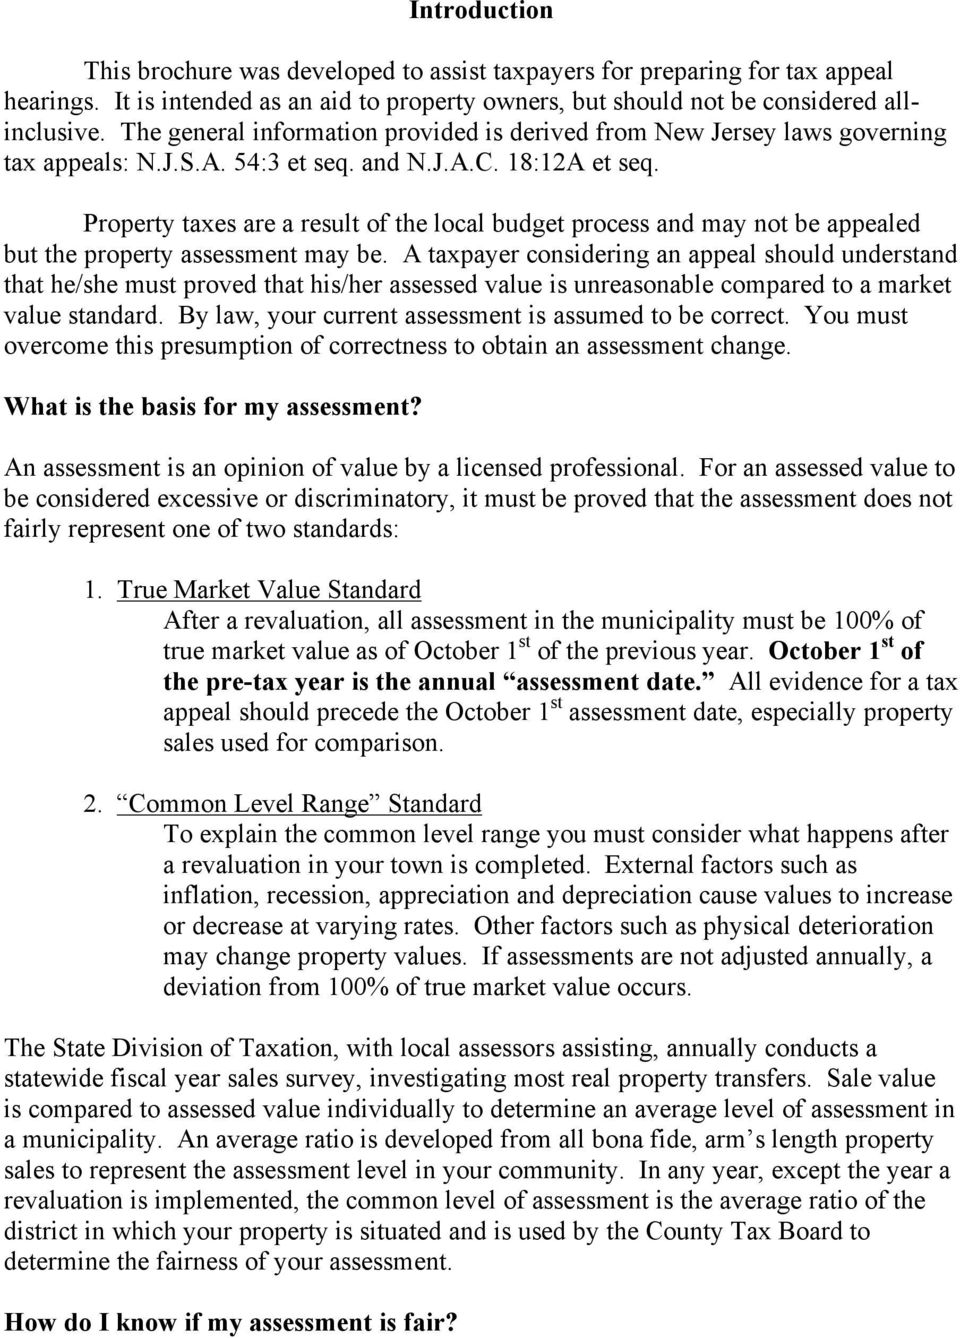 Property taxes are a result of the local budget process and may not be appealed but the property assessment may be.